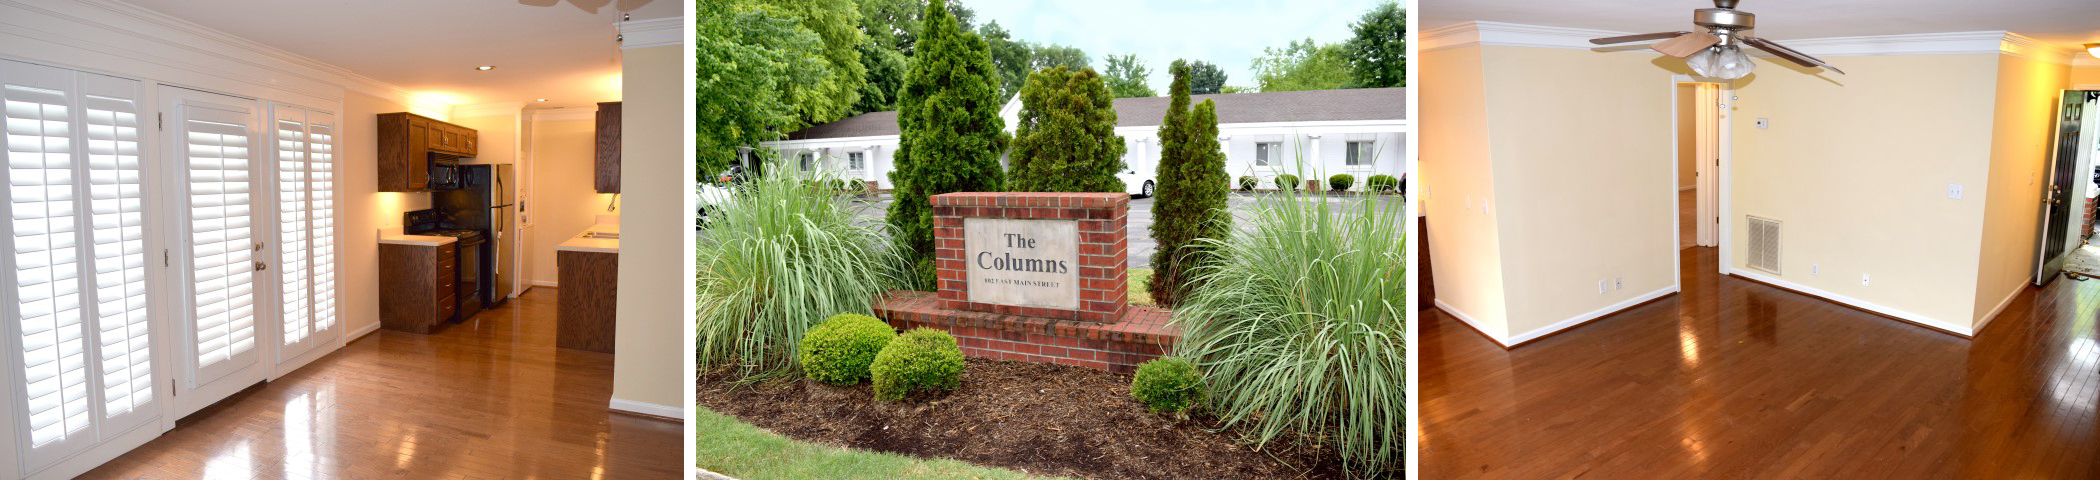 condo, downtown, murfreesboro, square, mtsu, central magnet, condominium, for sale, auction, real estate, home, house, property, investment